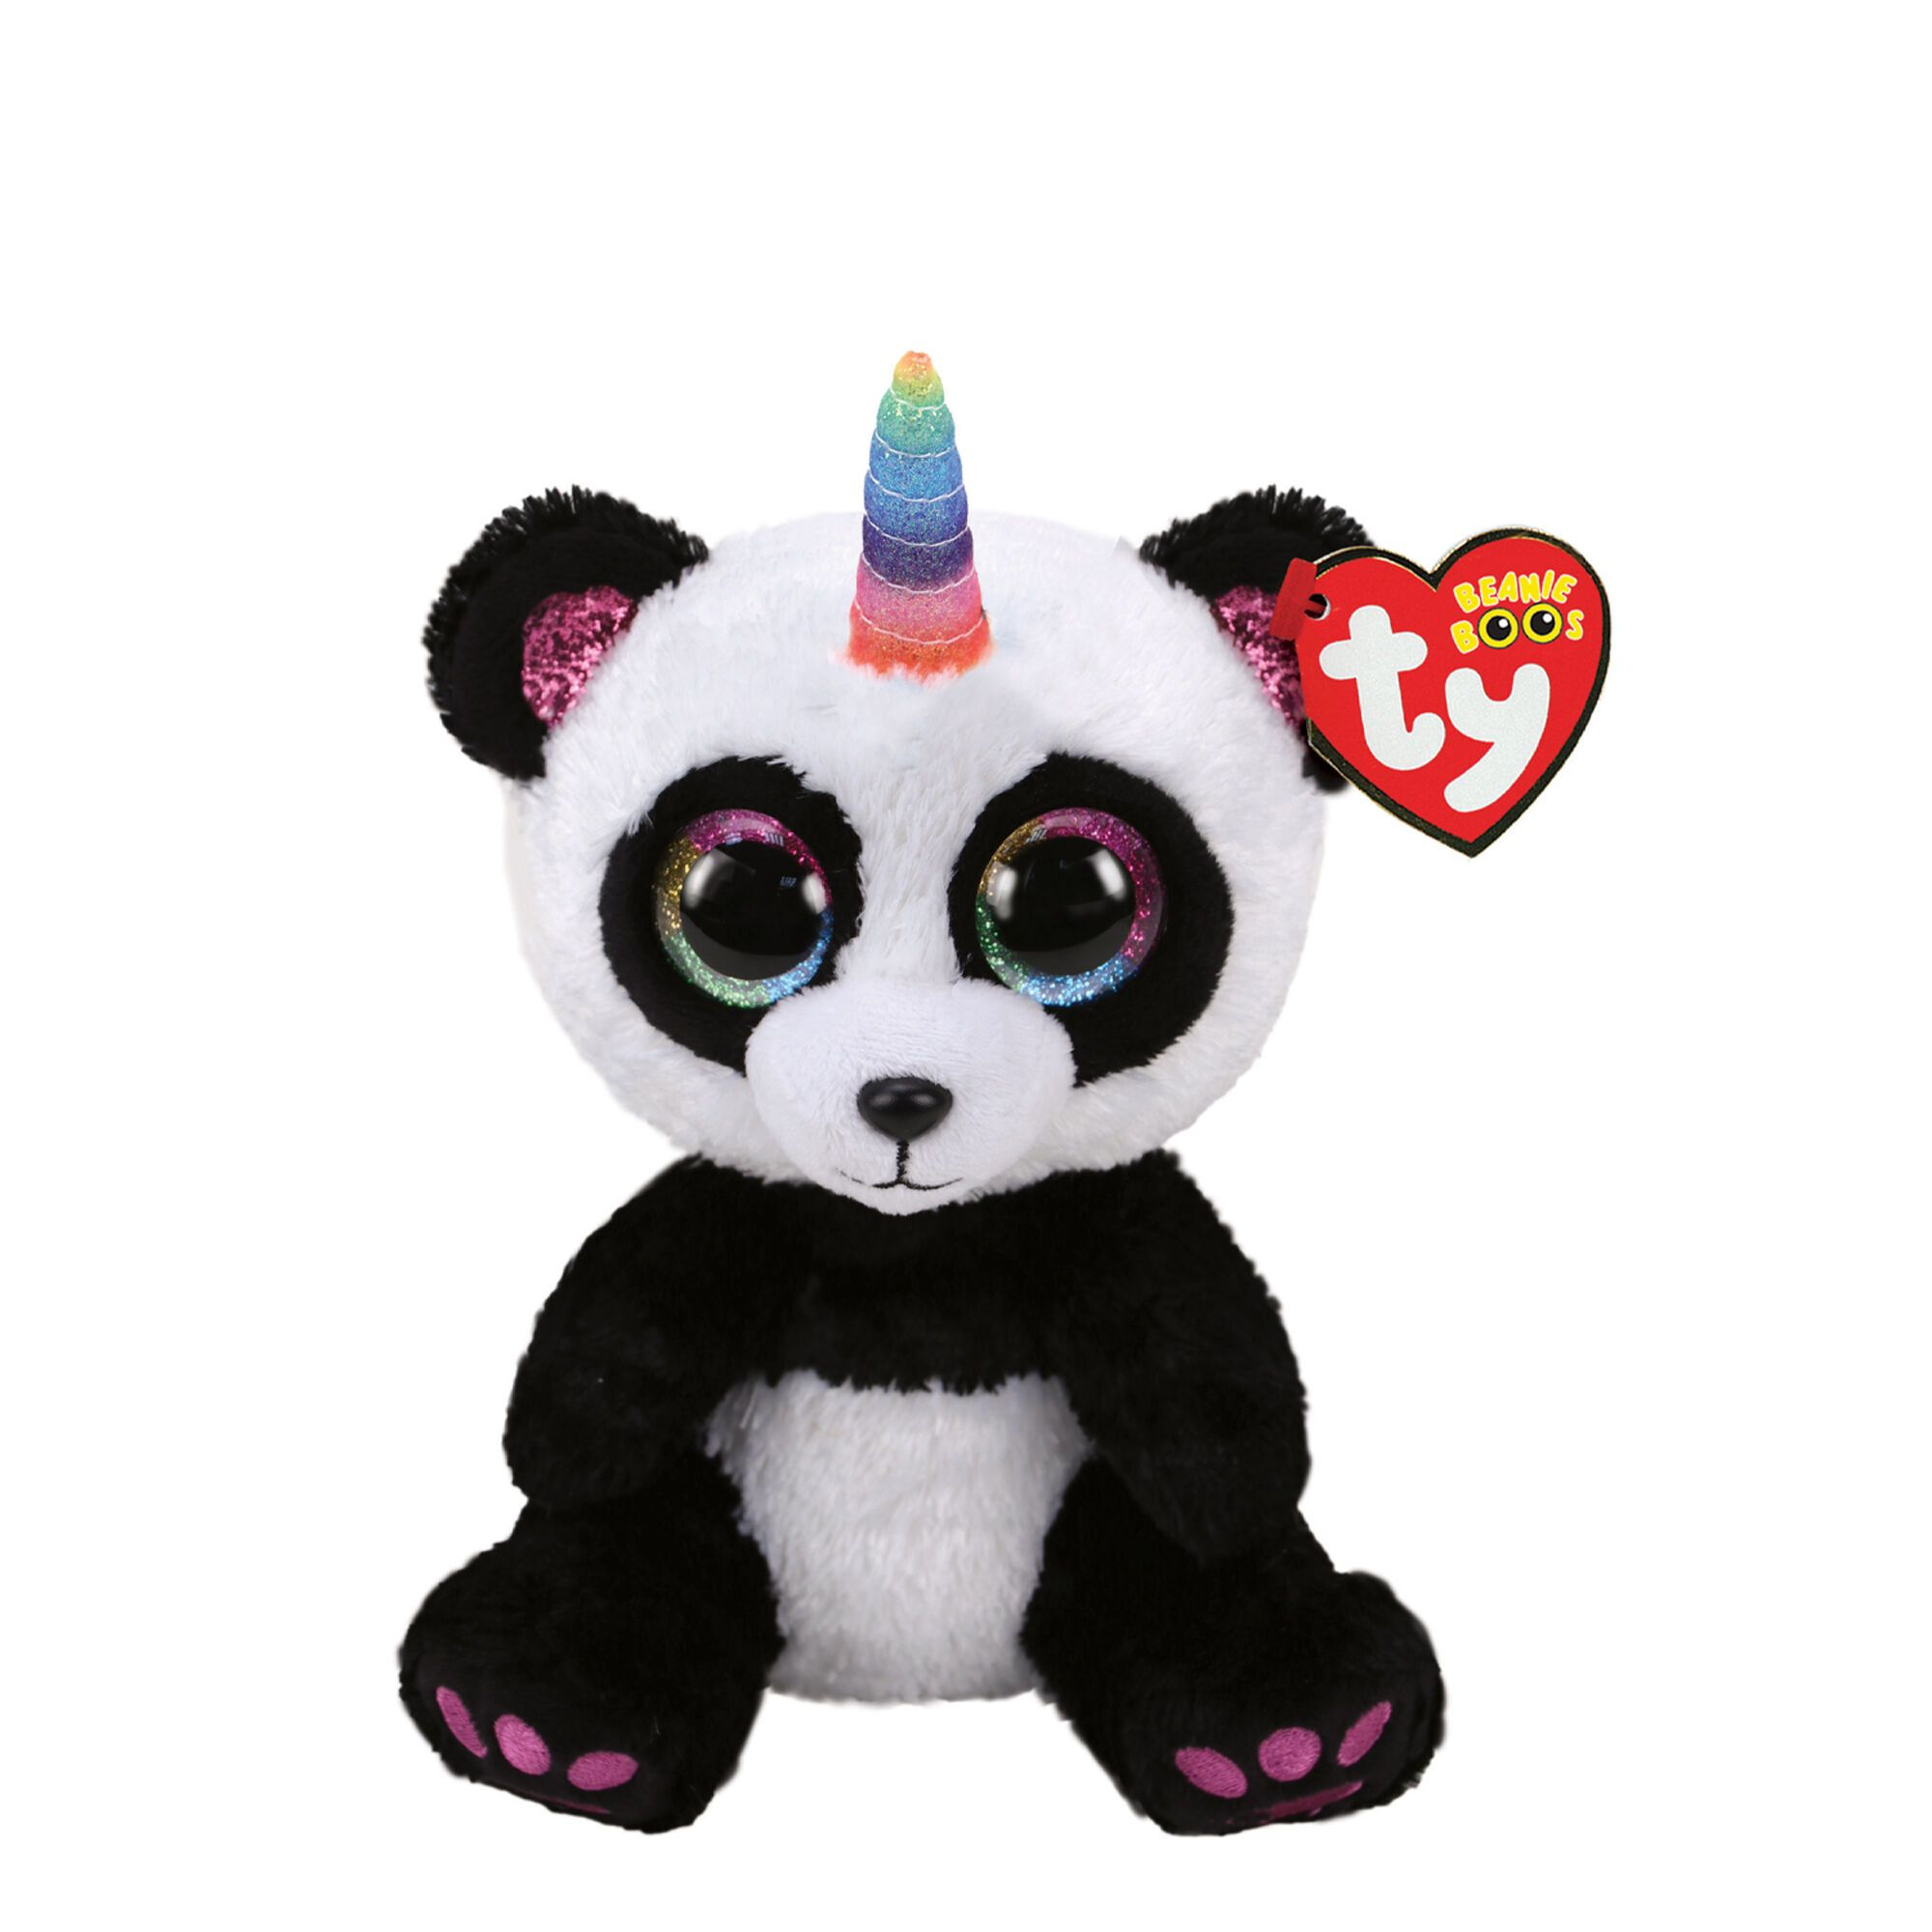 A cuddle buddy with a rainbow horn, The cutest panda that was ever born! Plush Toy by Ty Birthday: March 12th Height: 6